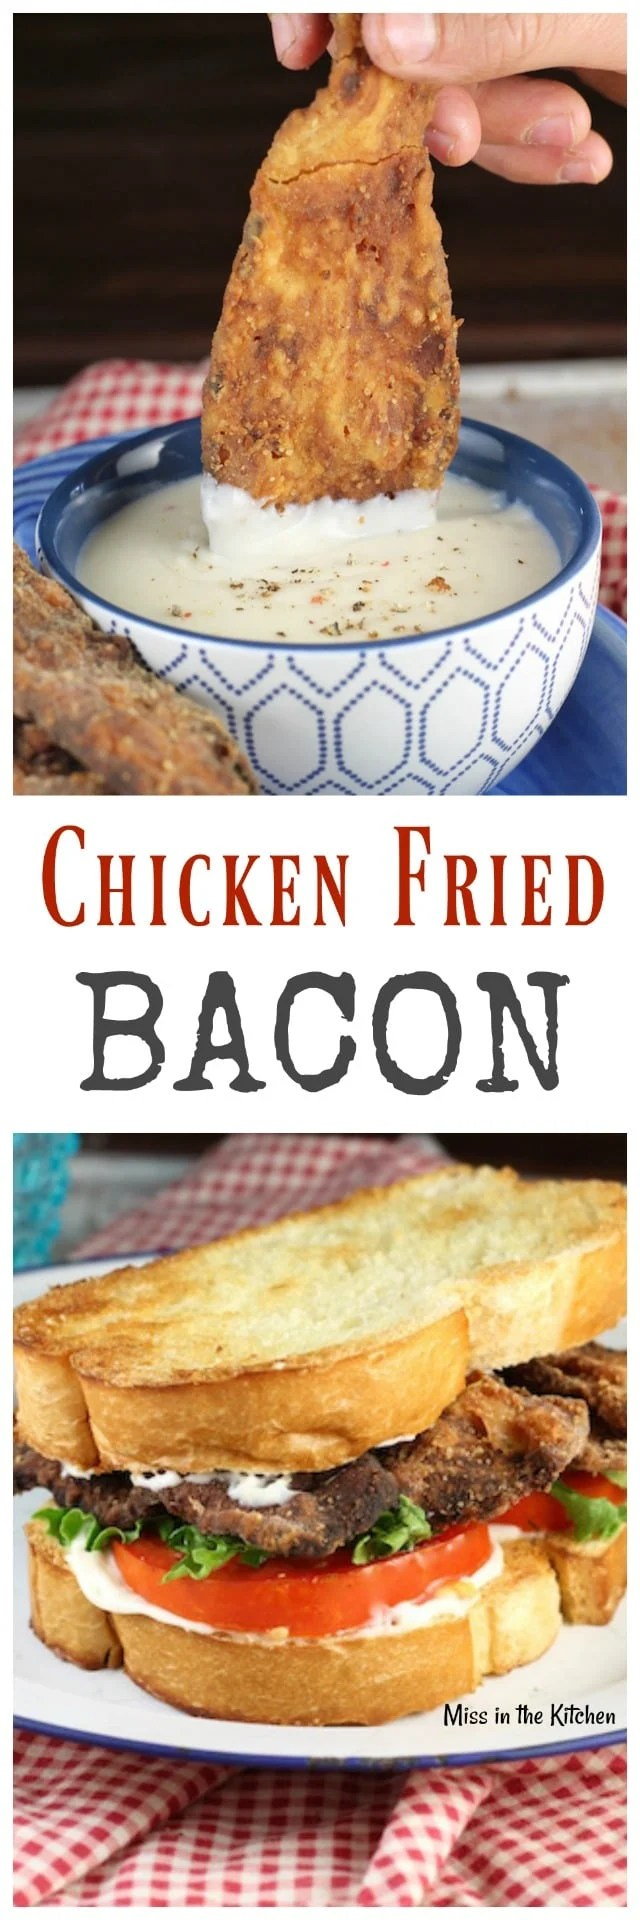 Chicken Fried Bacon Recipe is an epic appetizer or makes the best BLT you have ever tried! MissintheKitchen.com